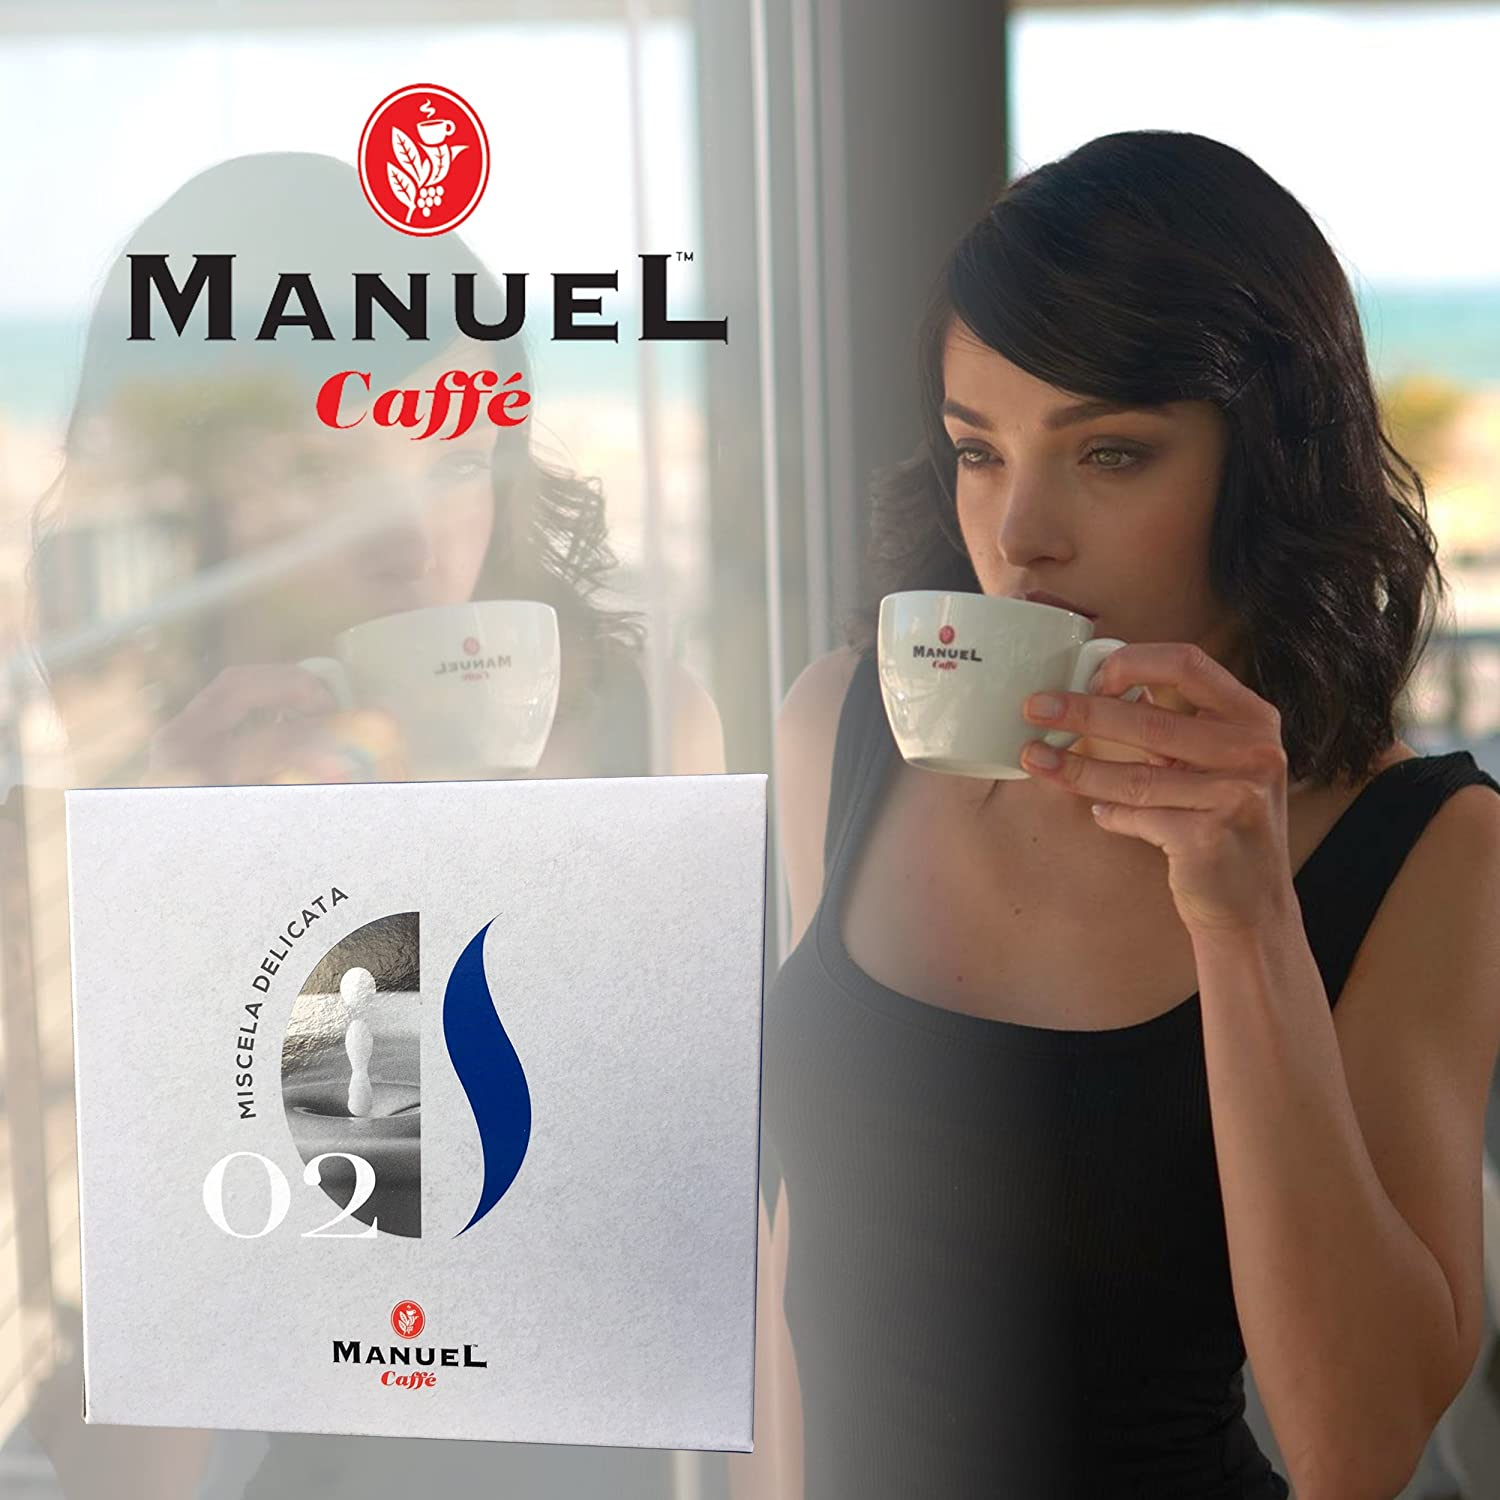 Roasted Italian Premium Espresso By Manuel Caffe. Light Roast, Medium-Bodied Blend, Rich And Thick Crema. More Flavor And Roast Selection In Our Amazon ...